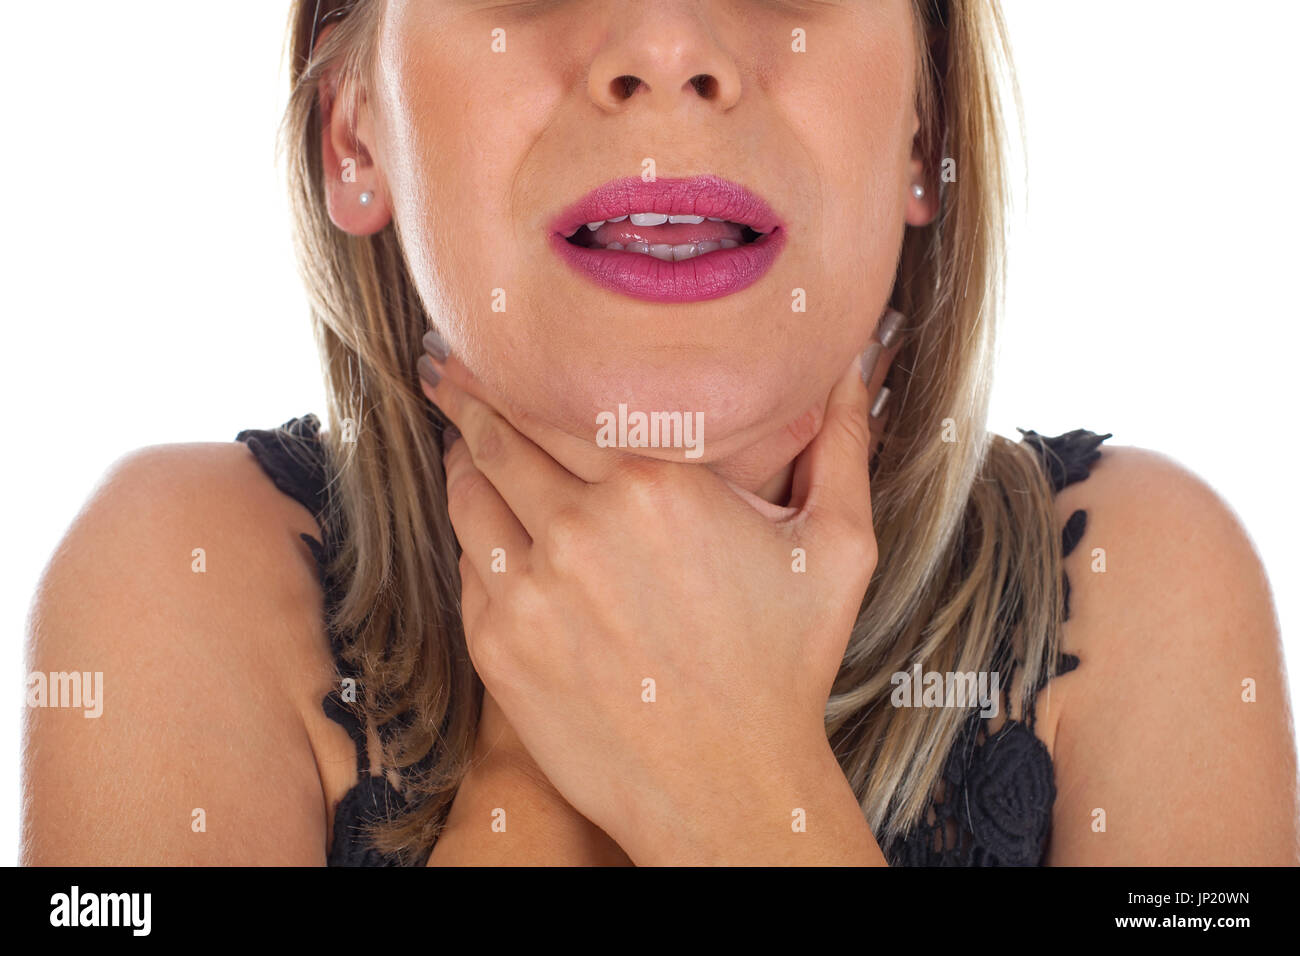 Picture of young woman having sore throat holding her neck, checking the inflamed glands - isolated background - Stock Image